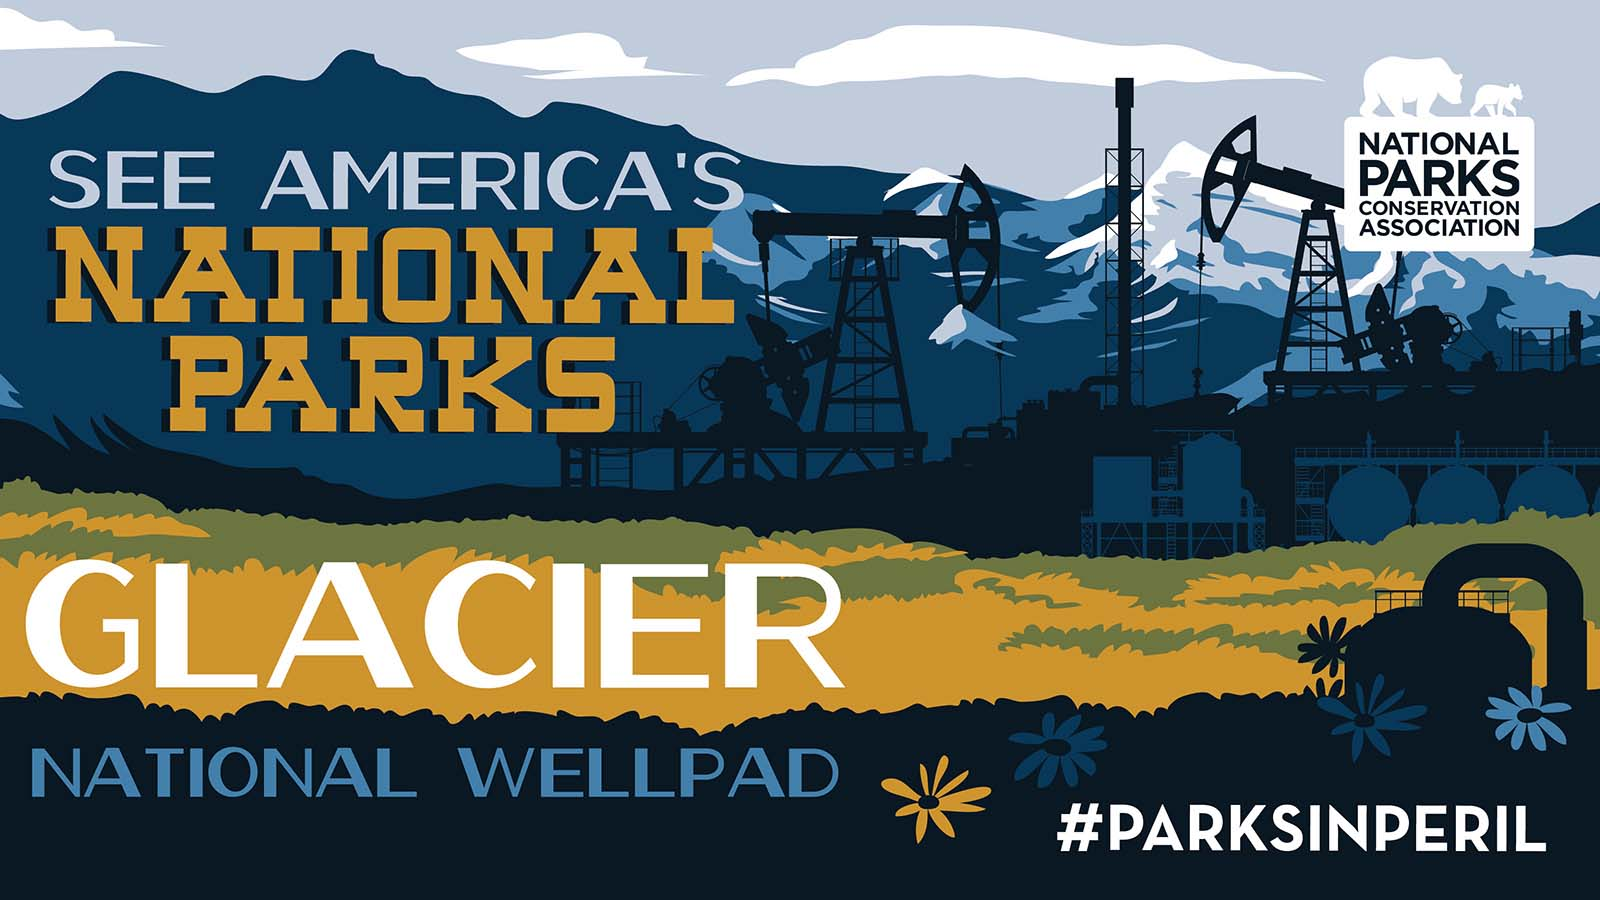 It's time for us to choose the future of Glacier National Park's borderlands: oil wells or wild nature?